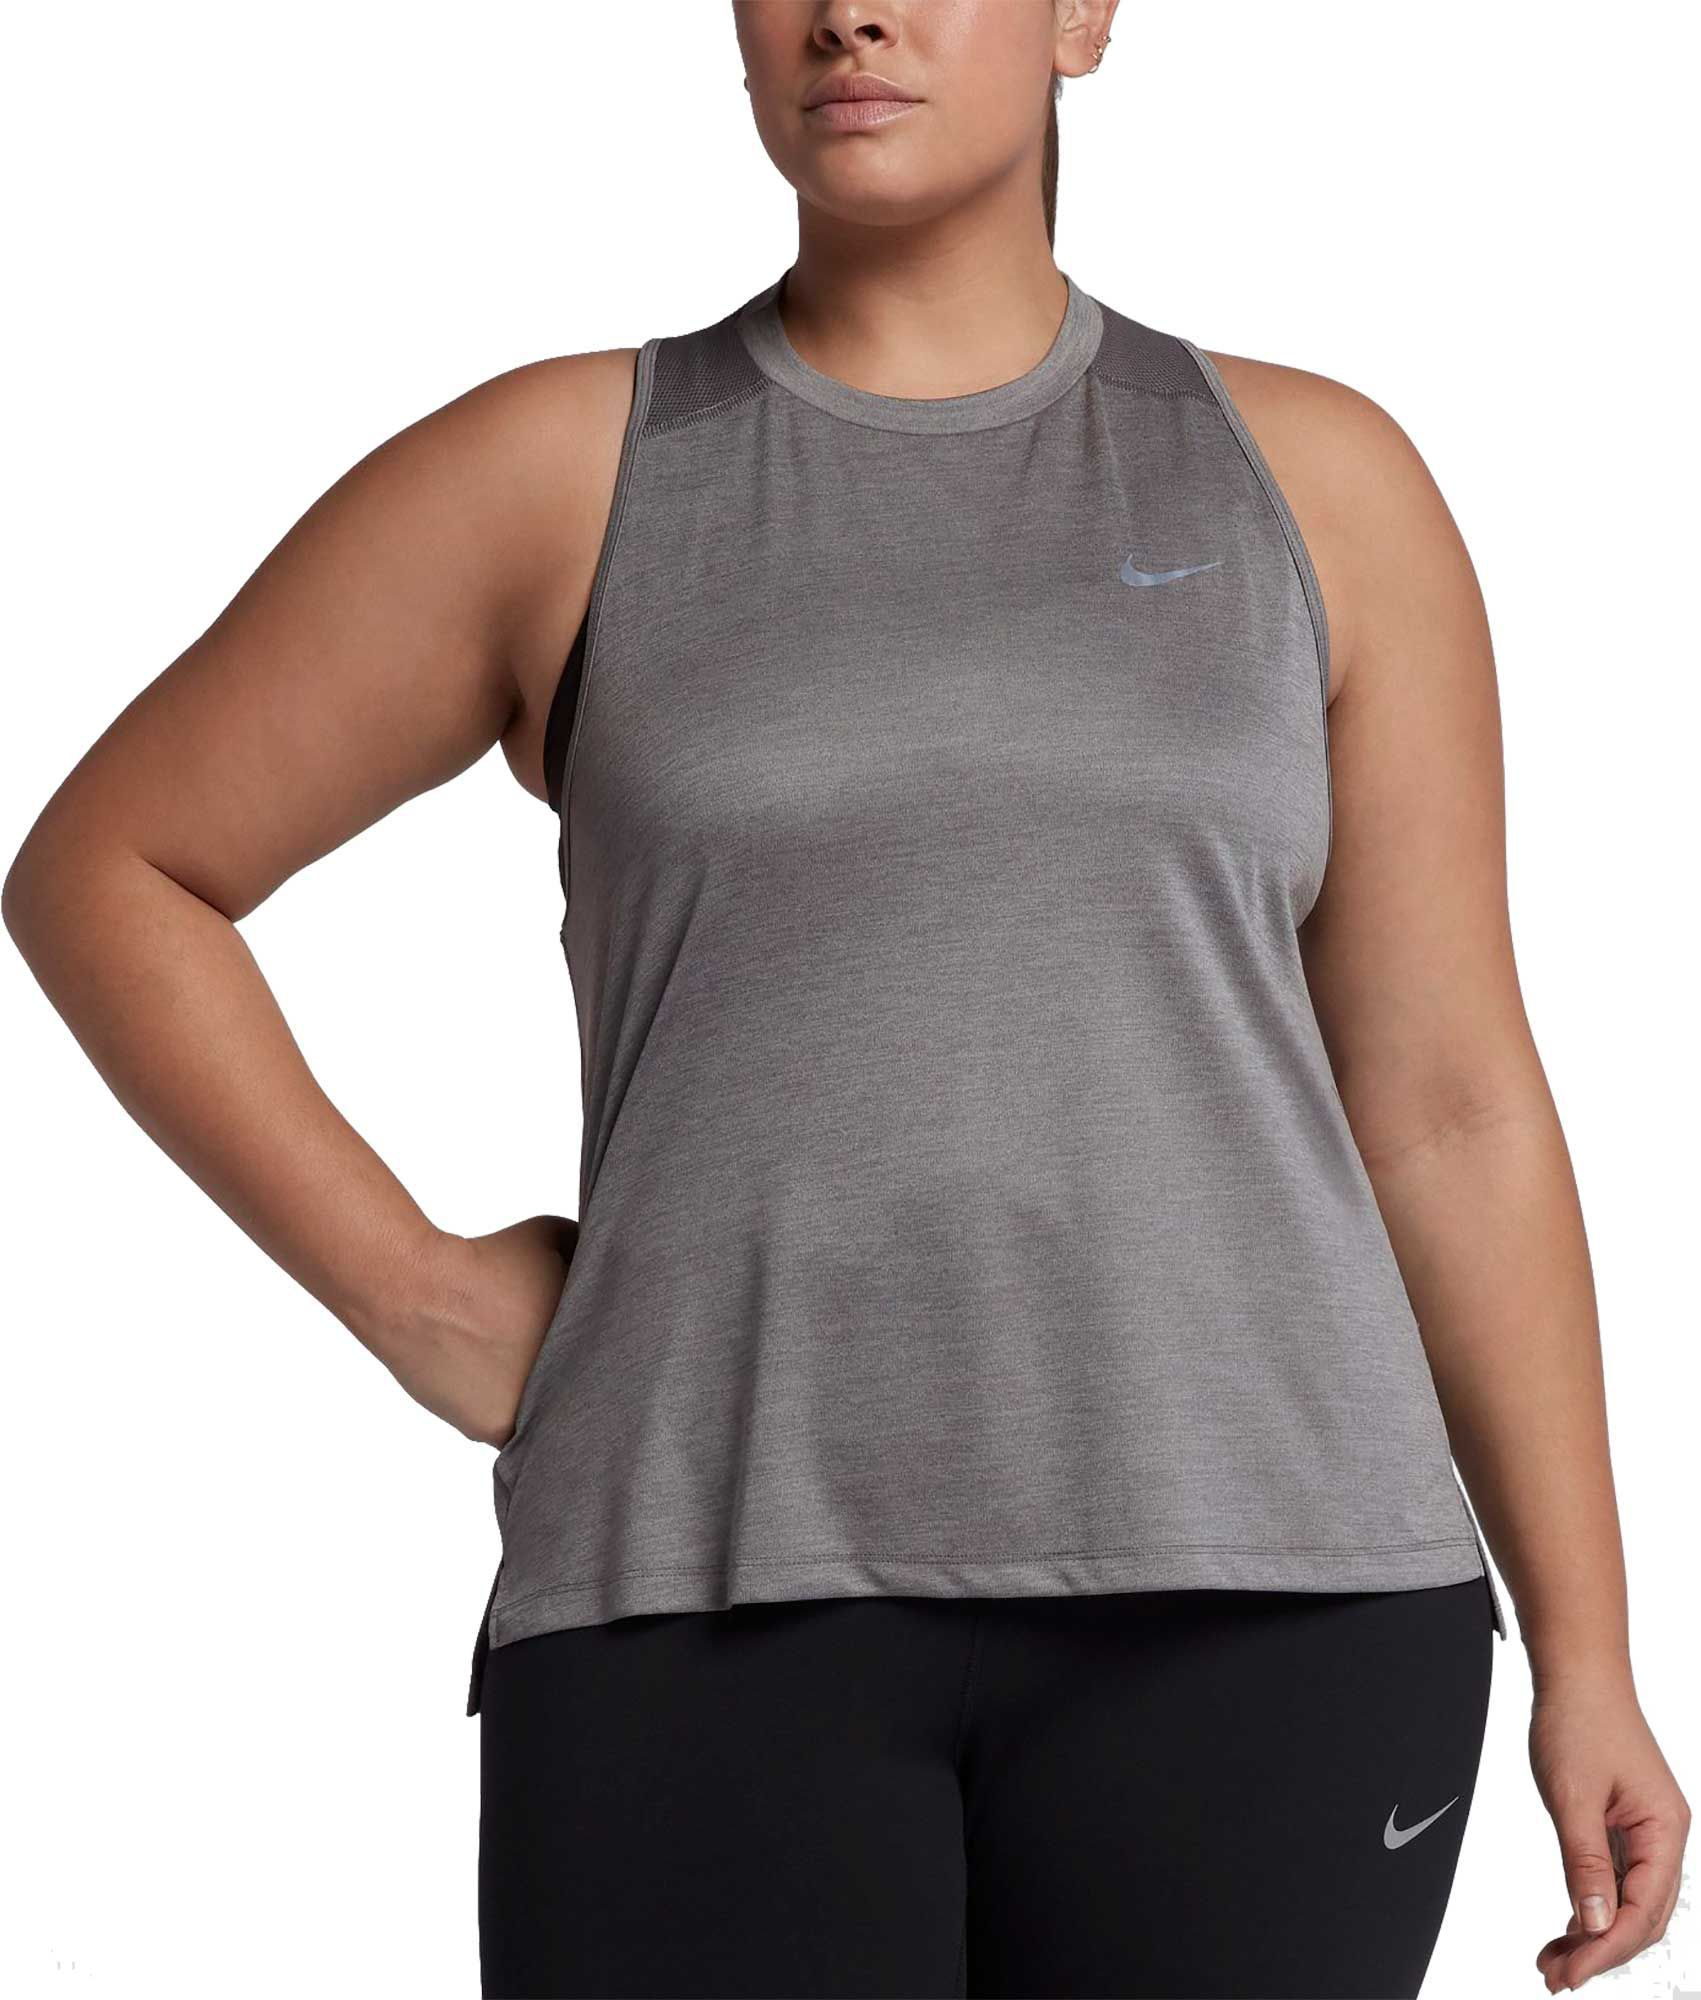 8aad0913a55 Nike Women s Plus Size Dry Miler Running Tank Top in 2018